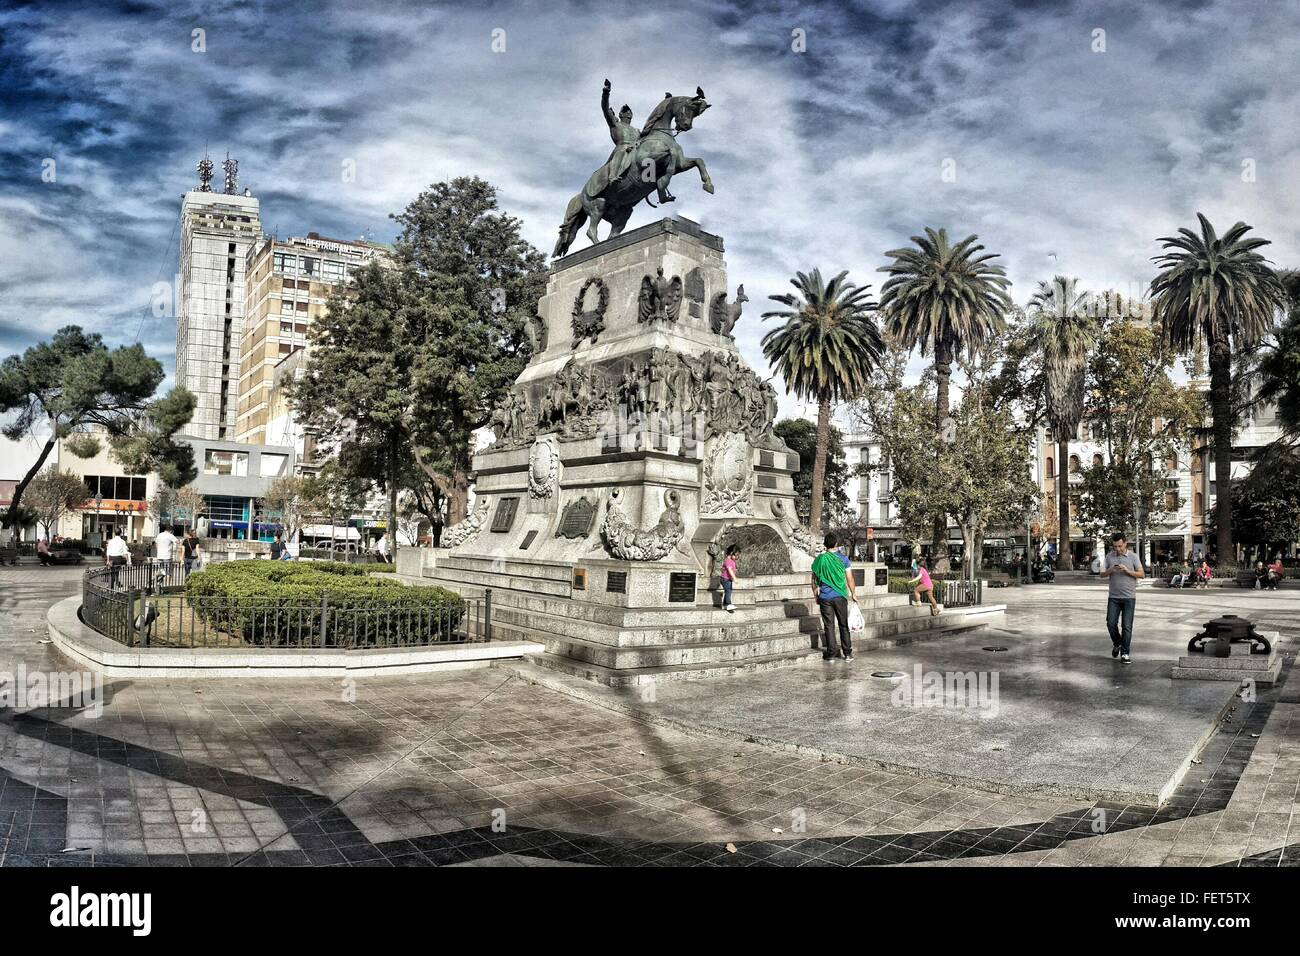 People At Statue Of General Jose De San Martin - Stock Image